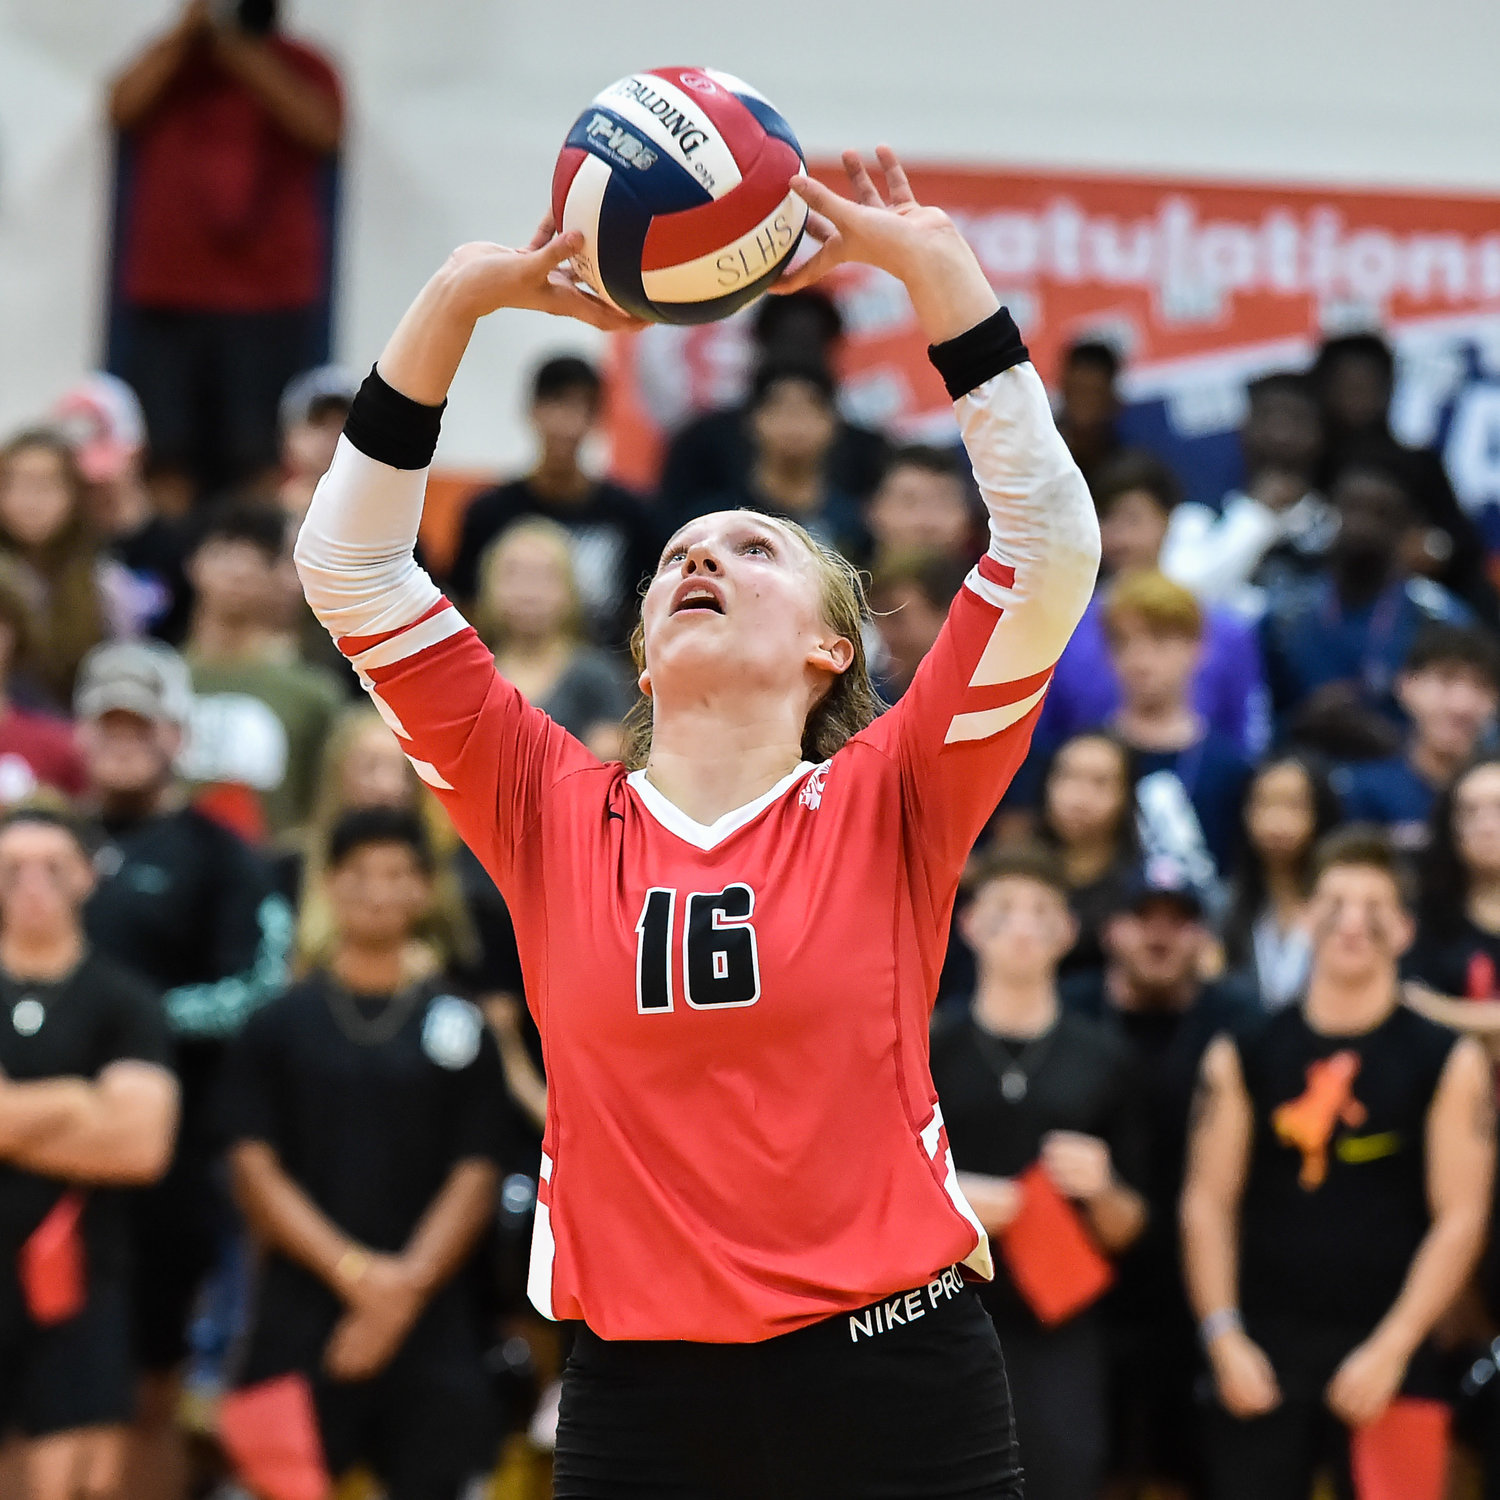 Katy Tx. Sept 24, 2019:  Katy's Maddie Waak (16) sets up a shot during a conference high school volleyball game between Katy and Seven Lakes at SLHS.  (Photo by Mark Goodman / Katy Times)